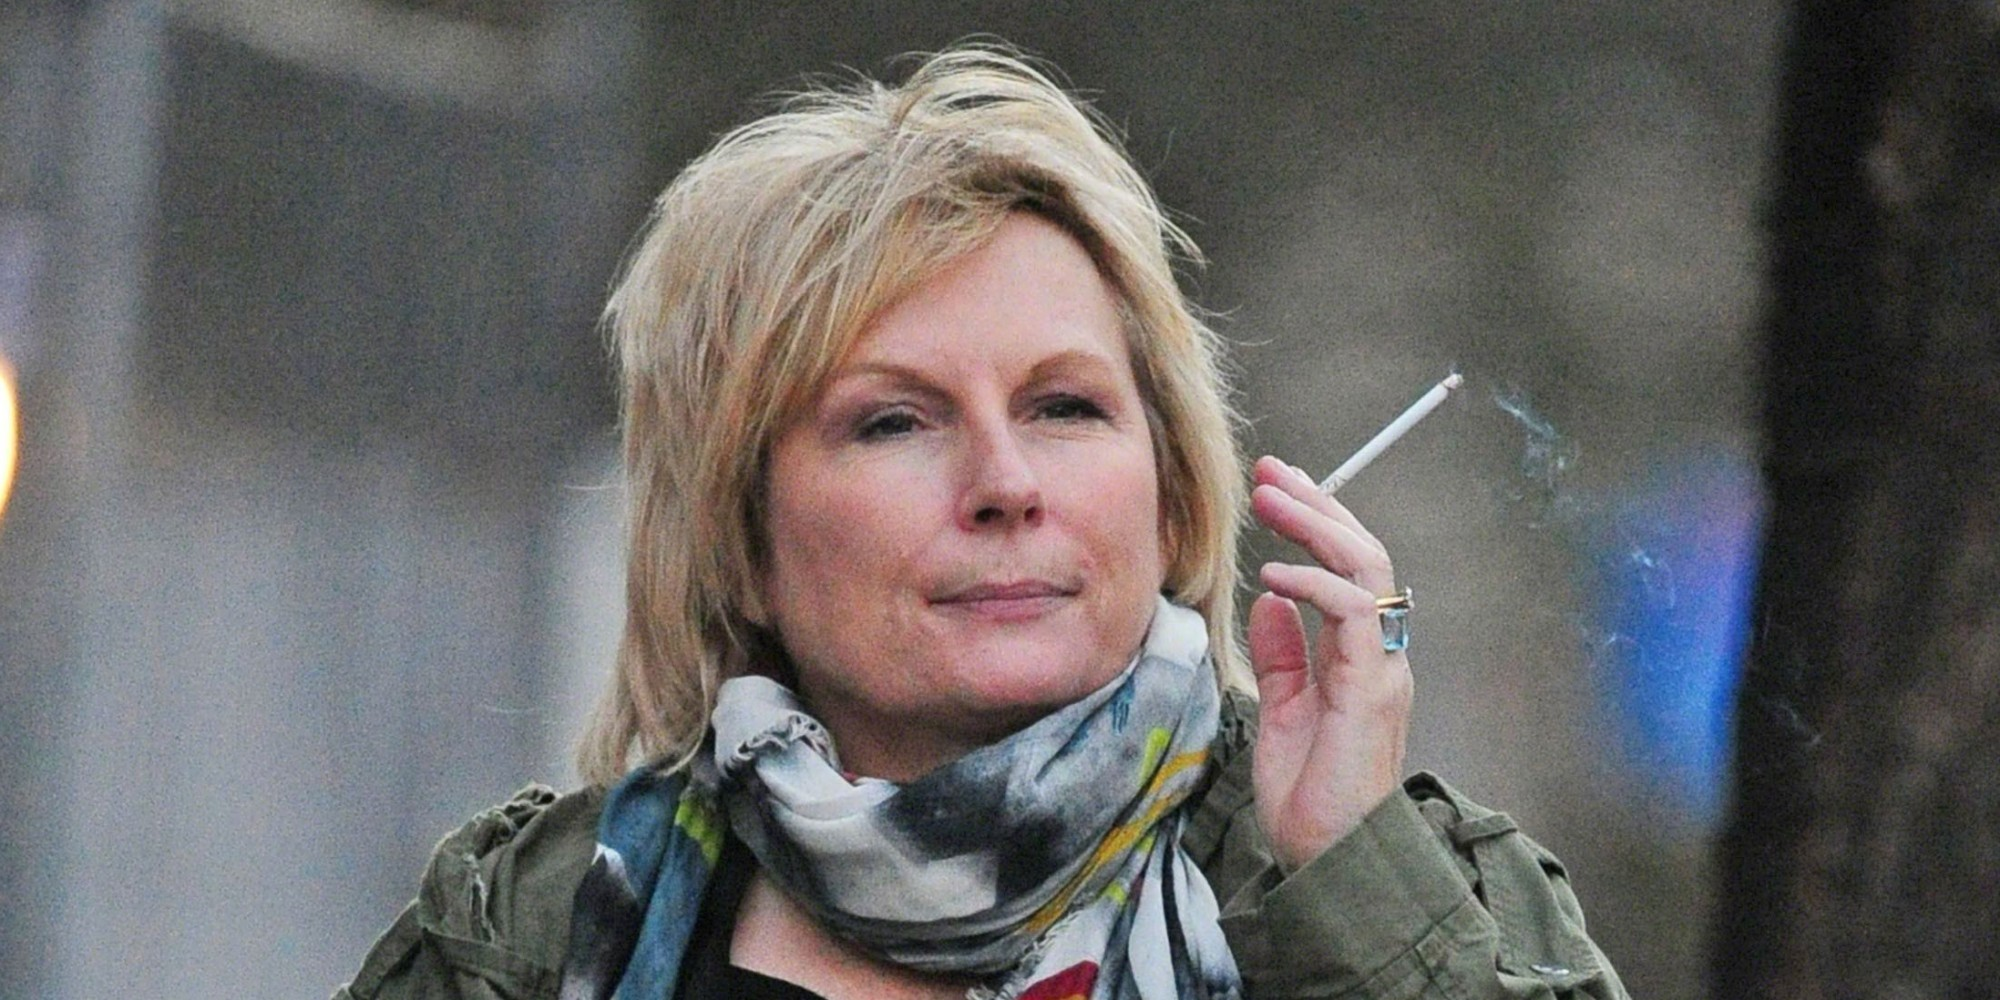 jennifer saunders i need a hero mp3jennifer saunders – i need a hero, jennifer saunders hero, jennifer saunders i need a hero скачать, jennifer saunders i need a hero download, jennifer saunders house, jennifer saunders wiki, jennifer saunders ade edmondson wedding, jennifer saunders weight loss, jennifer saunders grandchildren, jennifer saunders song, jennifer saunders holding out for a hero lyrics, jennifer saunders husband, jennifer saunders i need a hero mp3, jennifer saunders twitter, jennifer saunders i need a hero instrumental, jennifer saunders i need a hero lyrics, jennifer saunders friends youtube